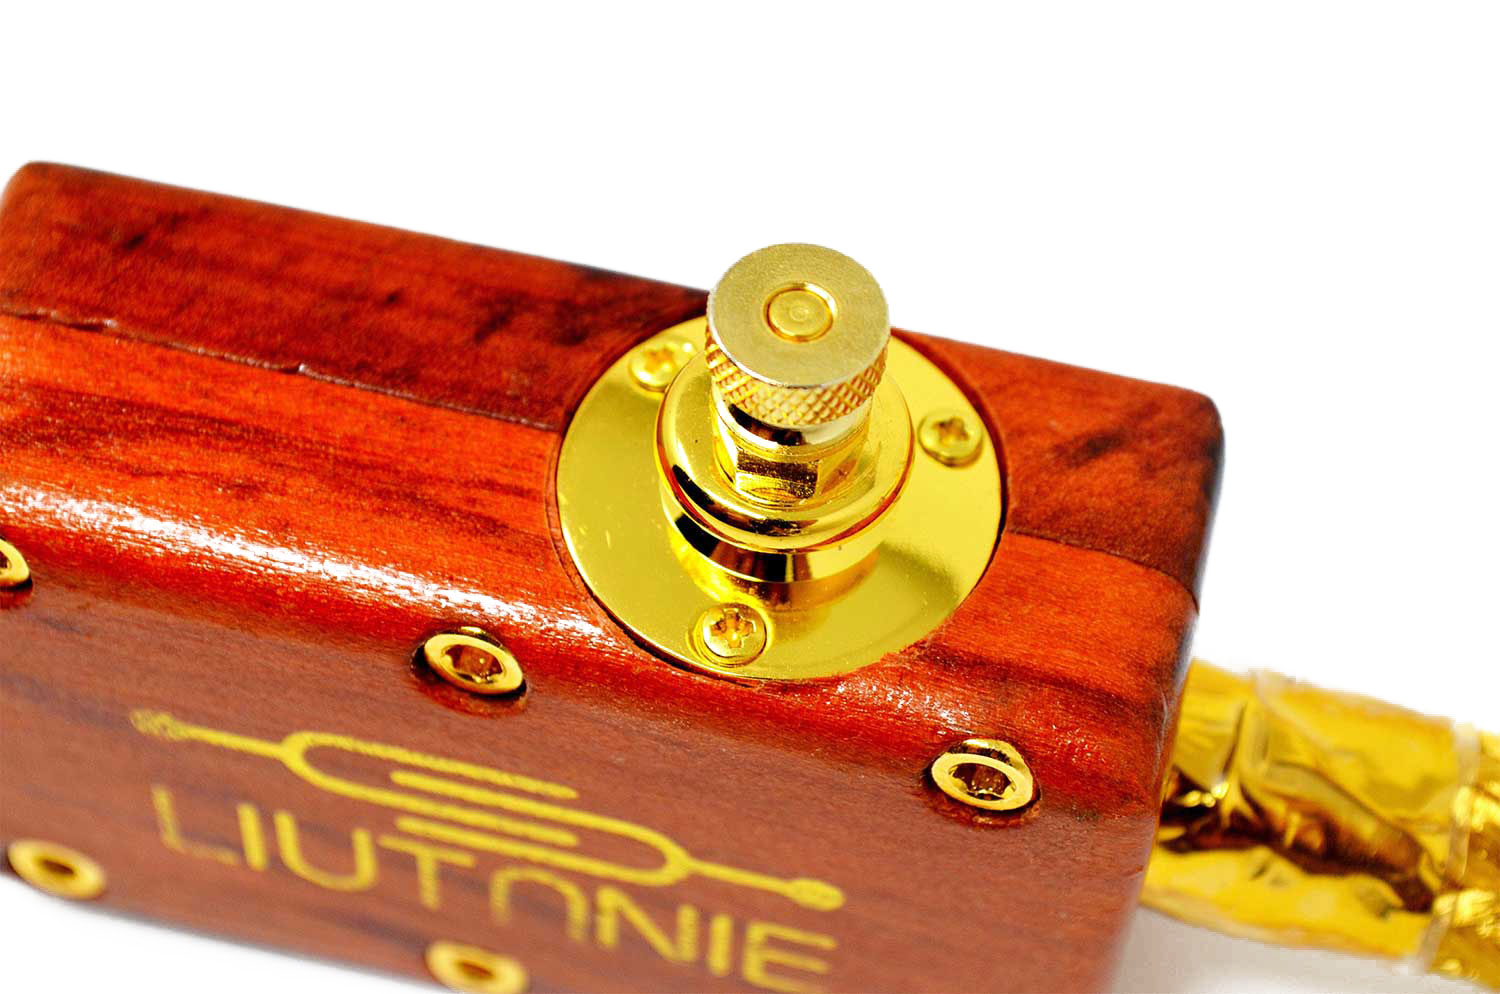 LIUTANIE_Audio_Gold_Connections